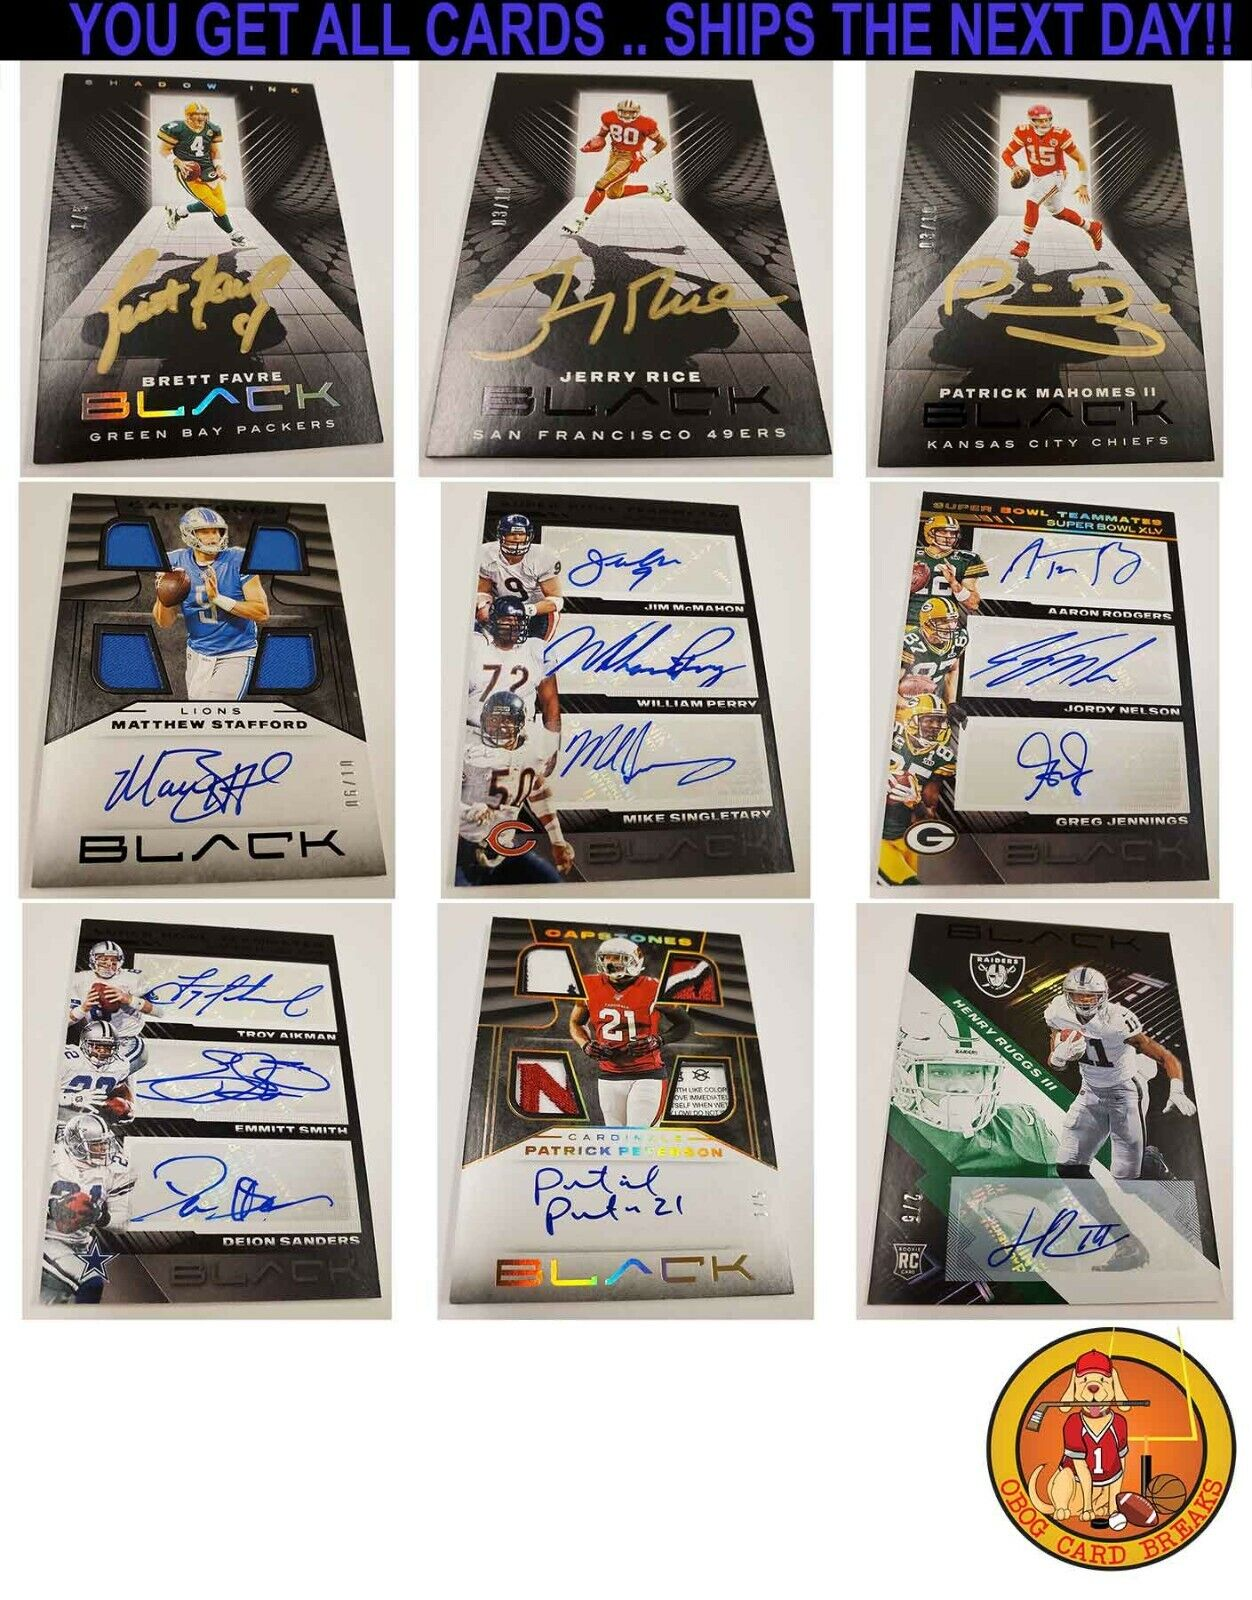 DALLAS COWBOYS 2020 PANINI BLACK FOOTBALL 1/3 4 BOXES CASE BREAK 4 - $78.00